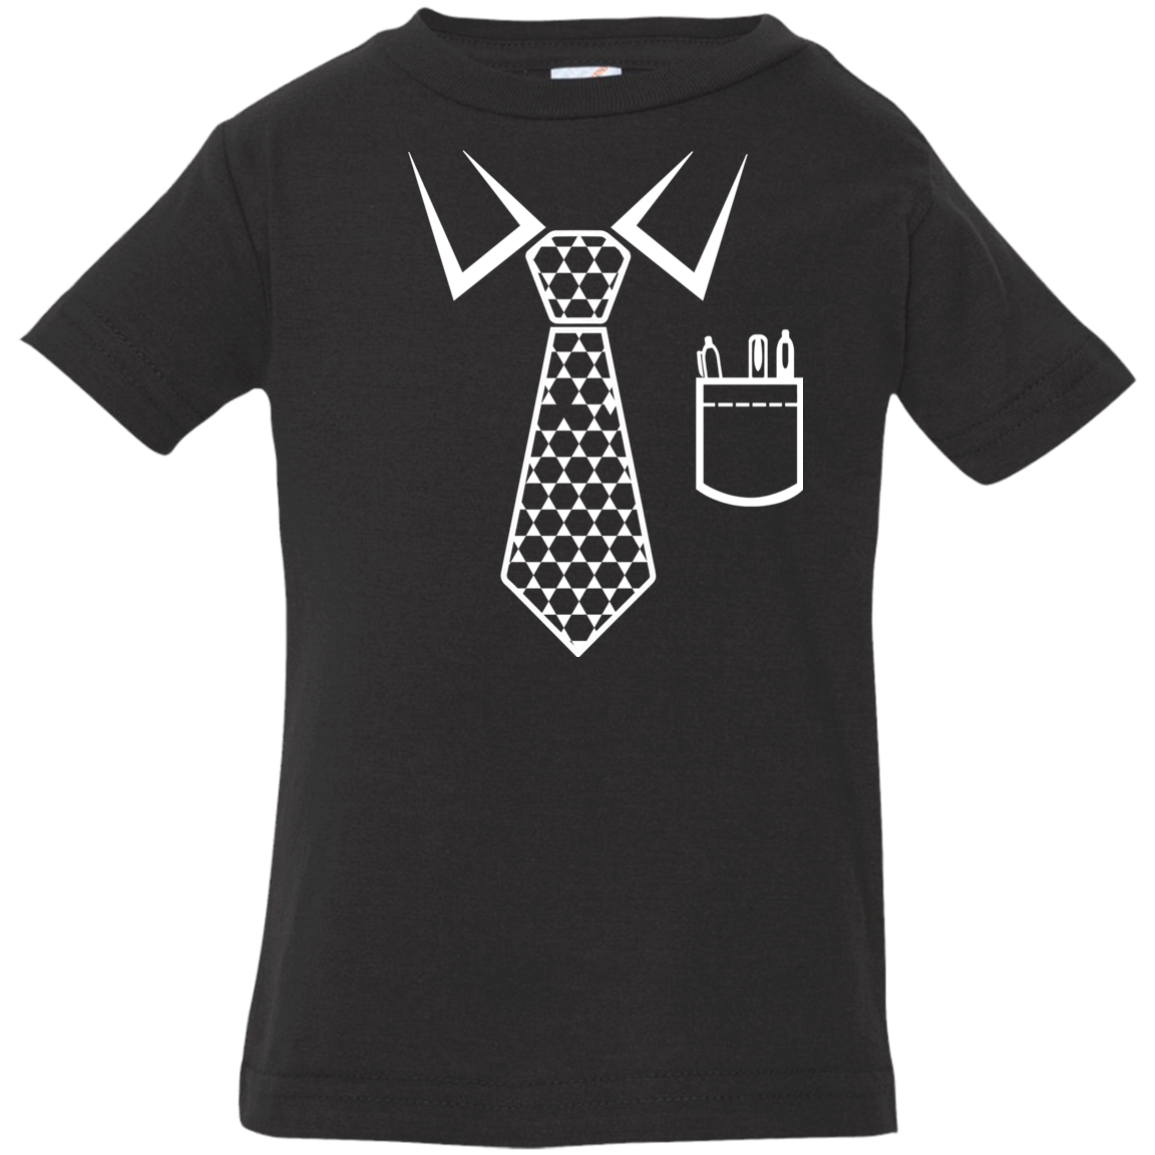 Tie Pocket Design Tee